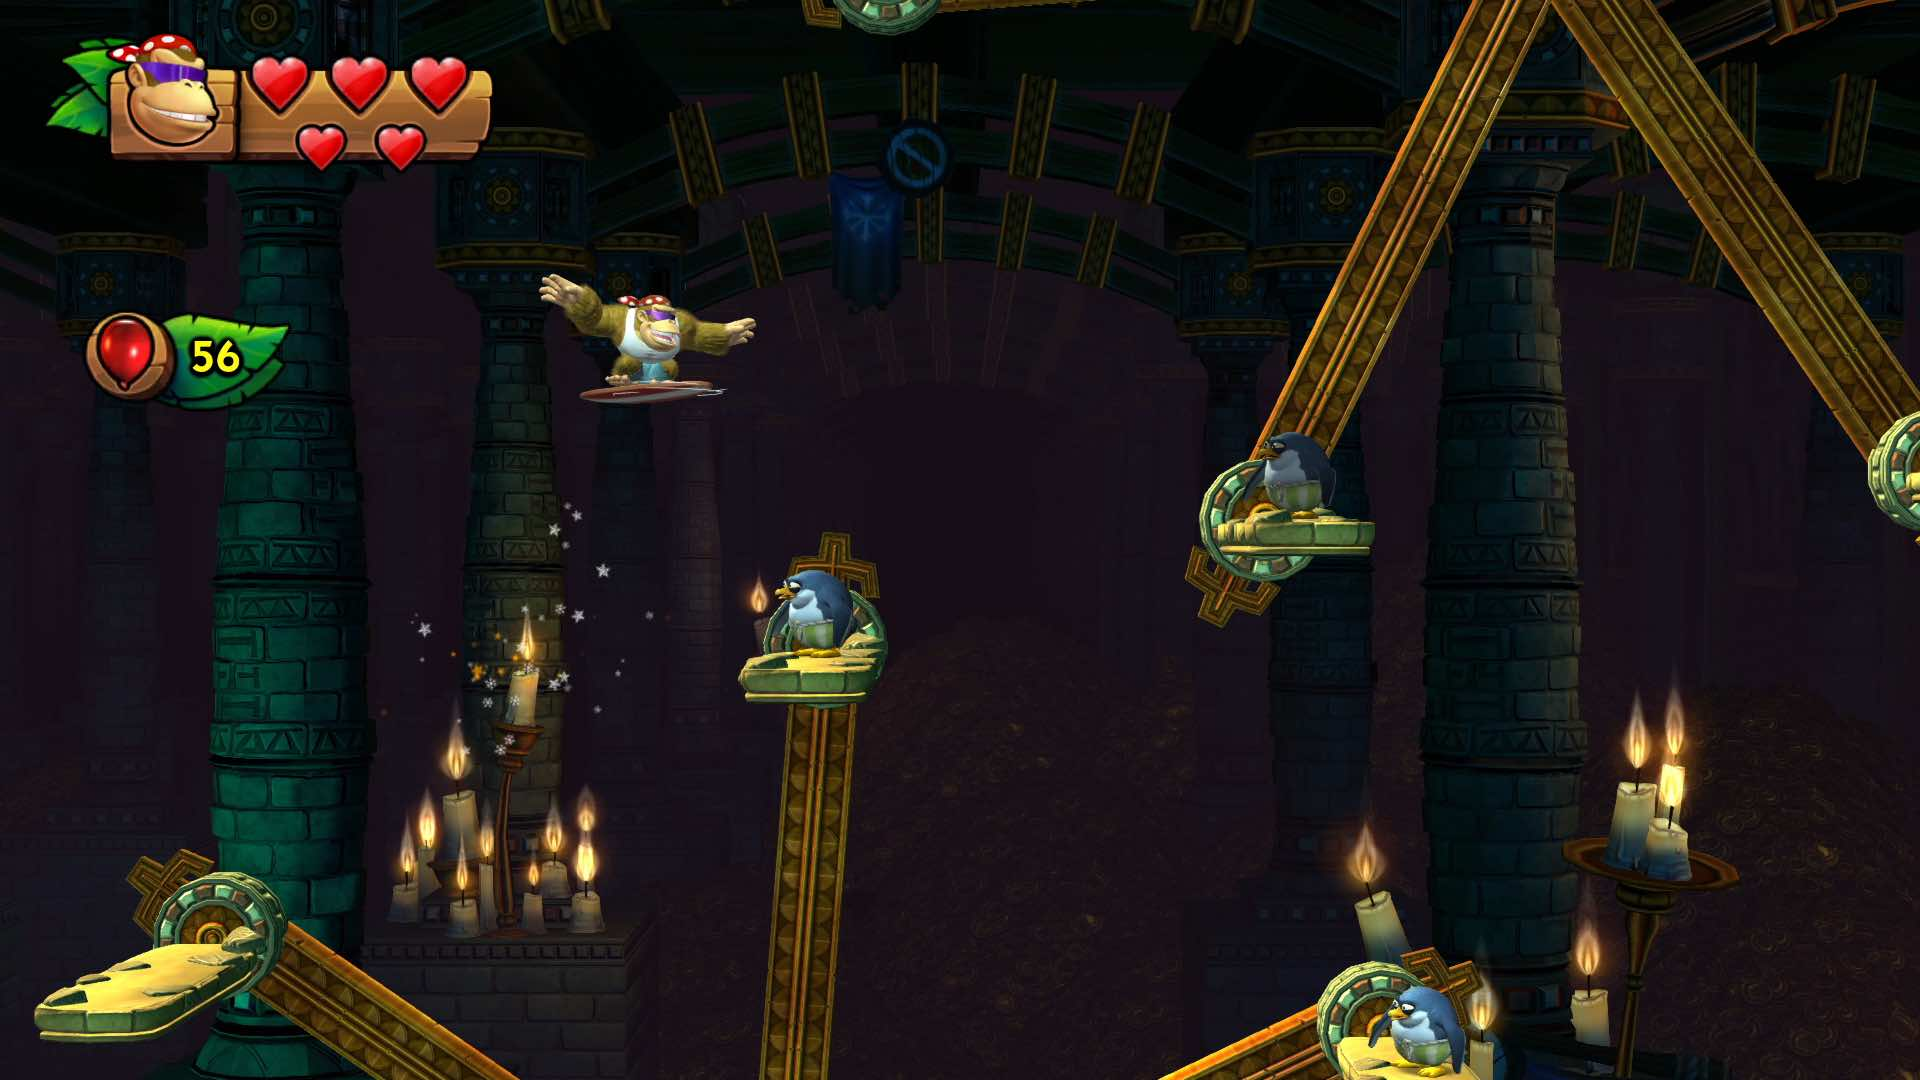 Donkey Kong Country: Tropical Freeze Switch Port Announced, Release Date Set